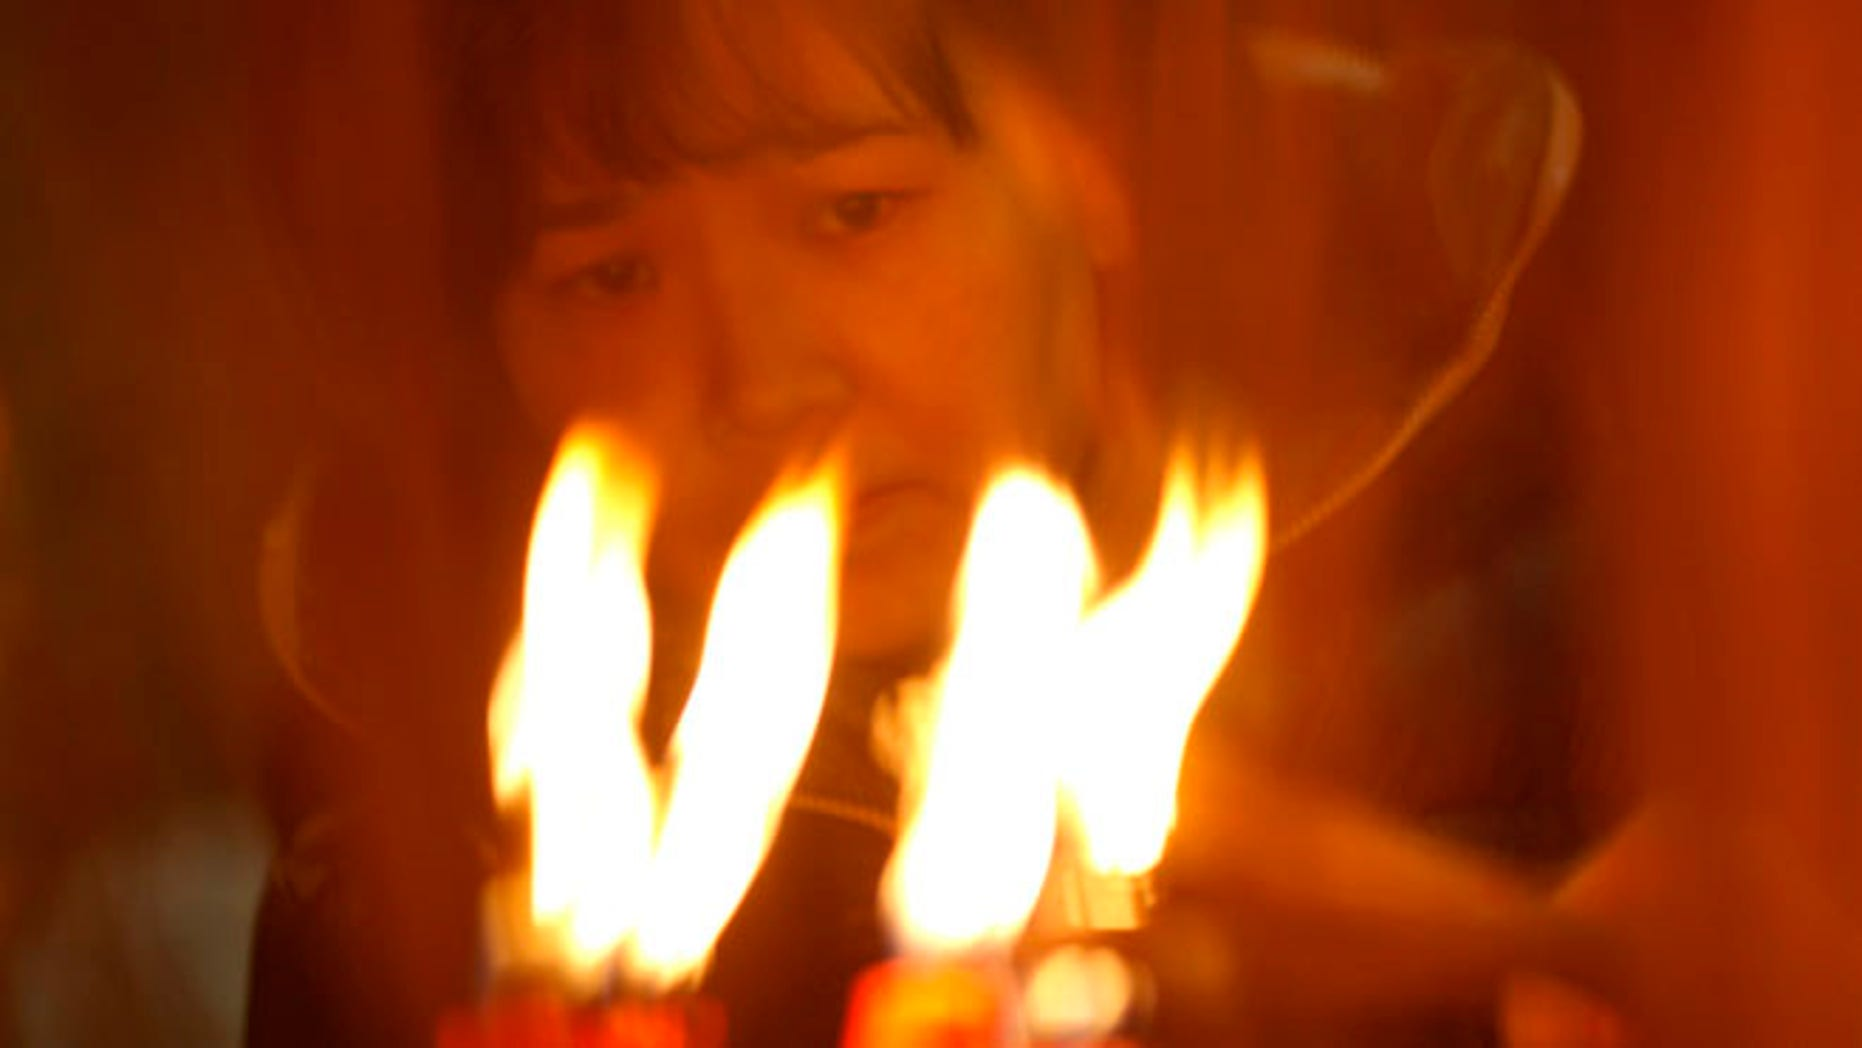 A worshipper burns joss sticks at a temple on the third day of the Chinese Lunar New Year celebrations Wednesday Jan. 25, 2012 in Hong Kong. (AP Photo/Vincent Yu)